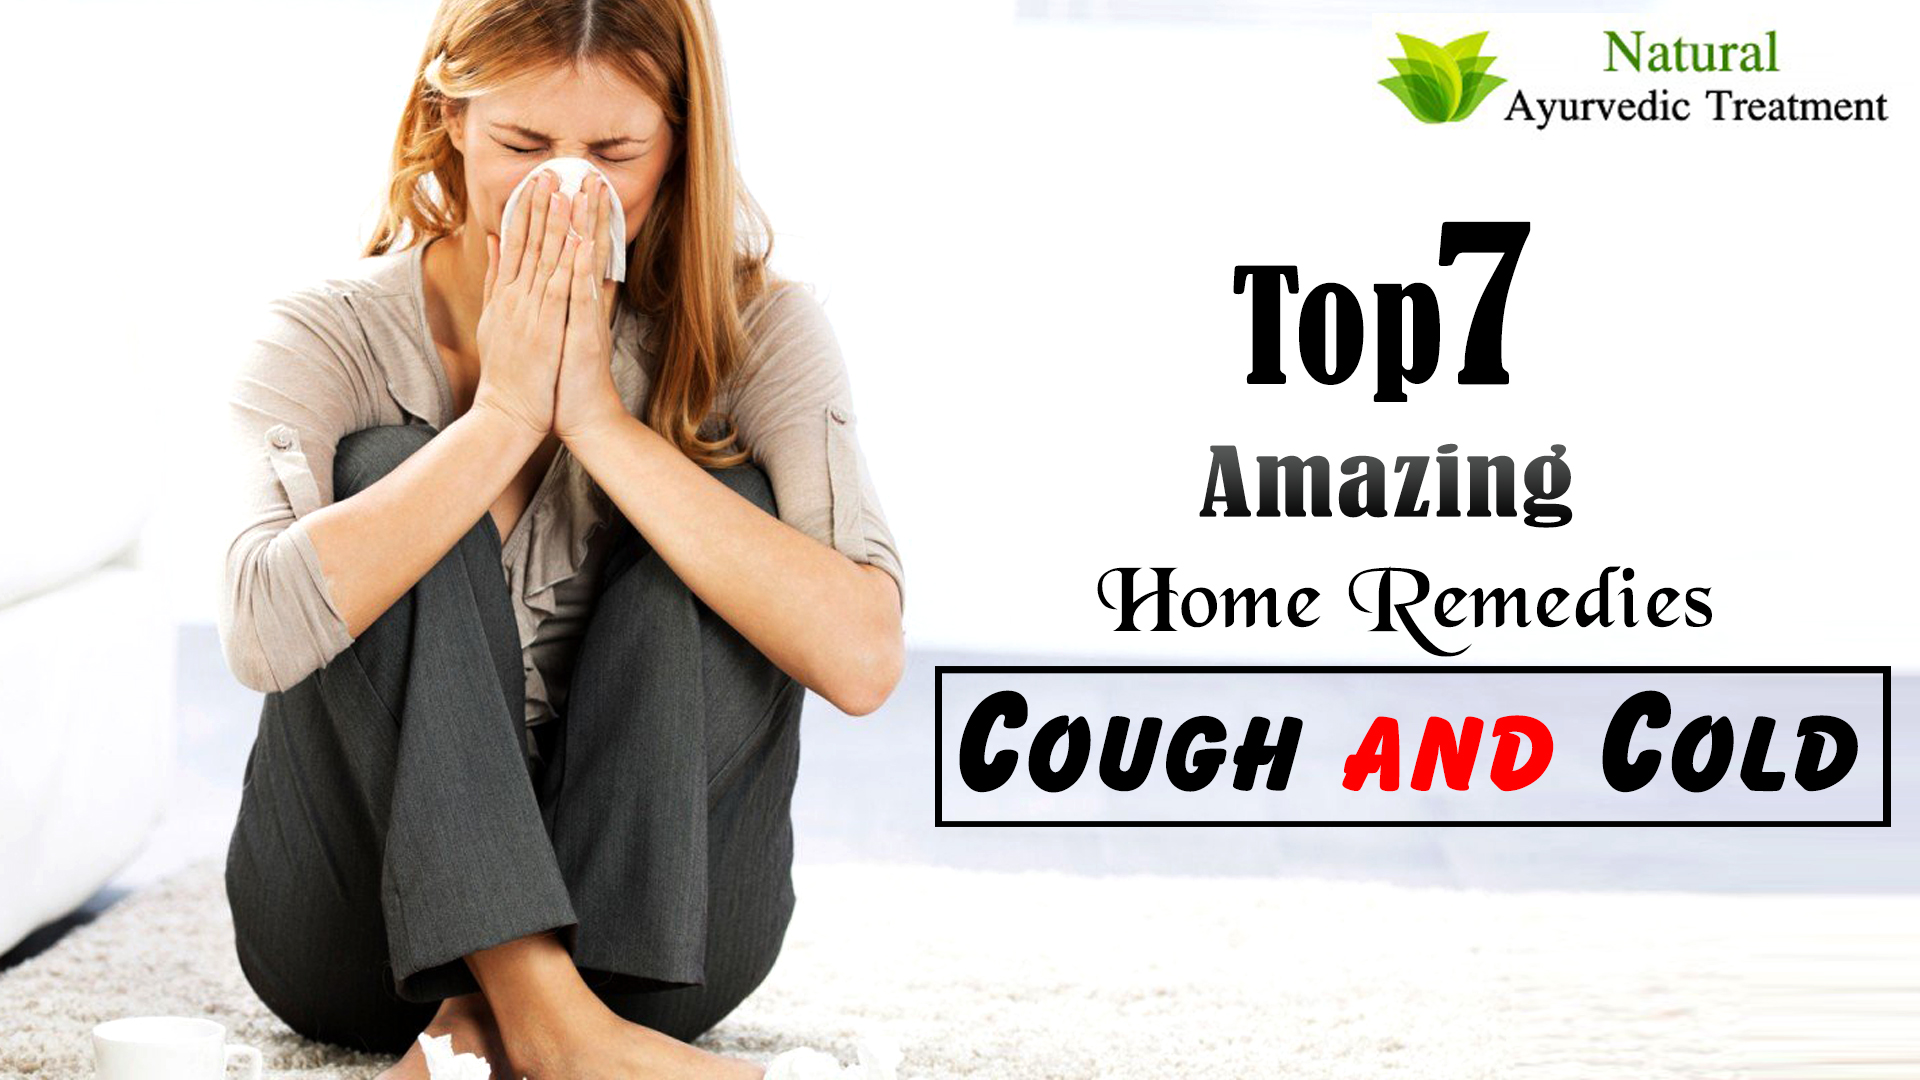 Top 7 Amazing Home Remedies for Cough and Cold